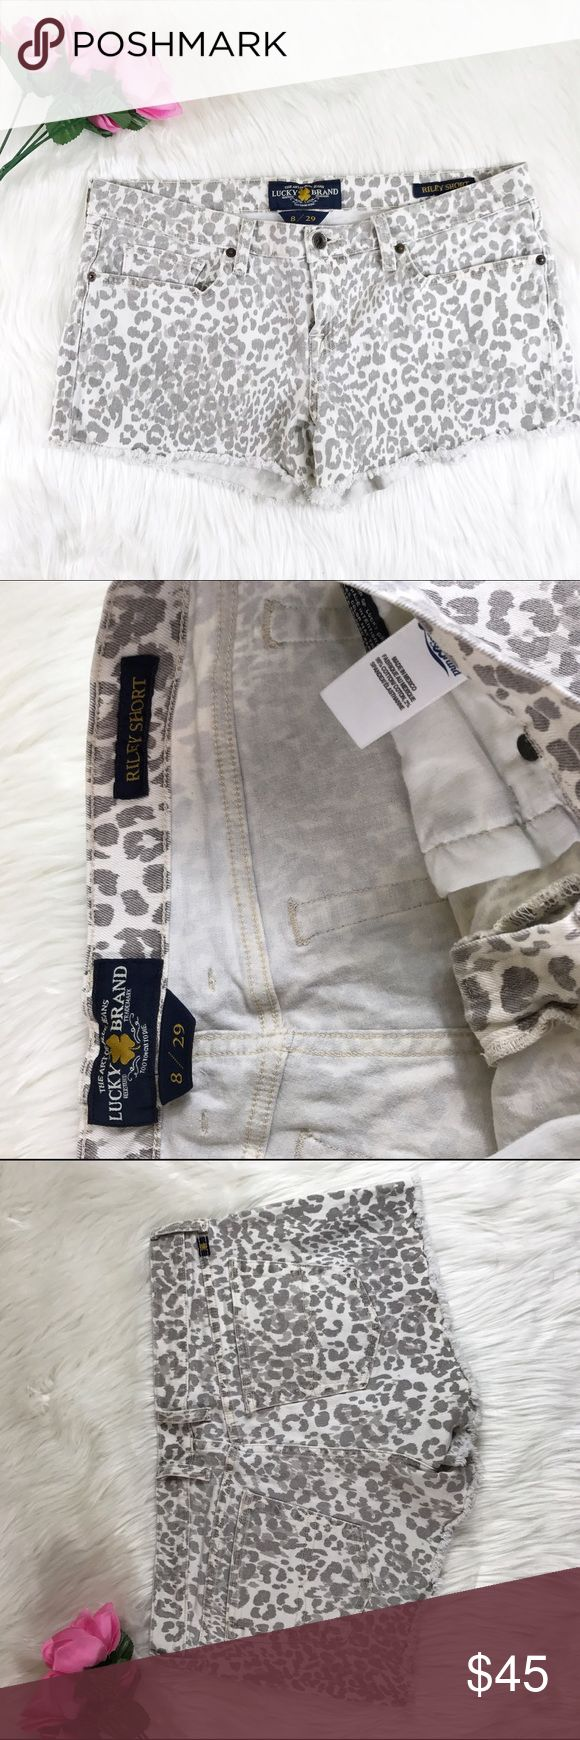 """Lucky Brand Riley spring cheetah shorts Excellent condition, no sign of wear. Size 8/29. Waist across 16.5"""" Waist down 10"""" Inseam 3"""" Lucky Brand Shorts Jean Shorts"""